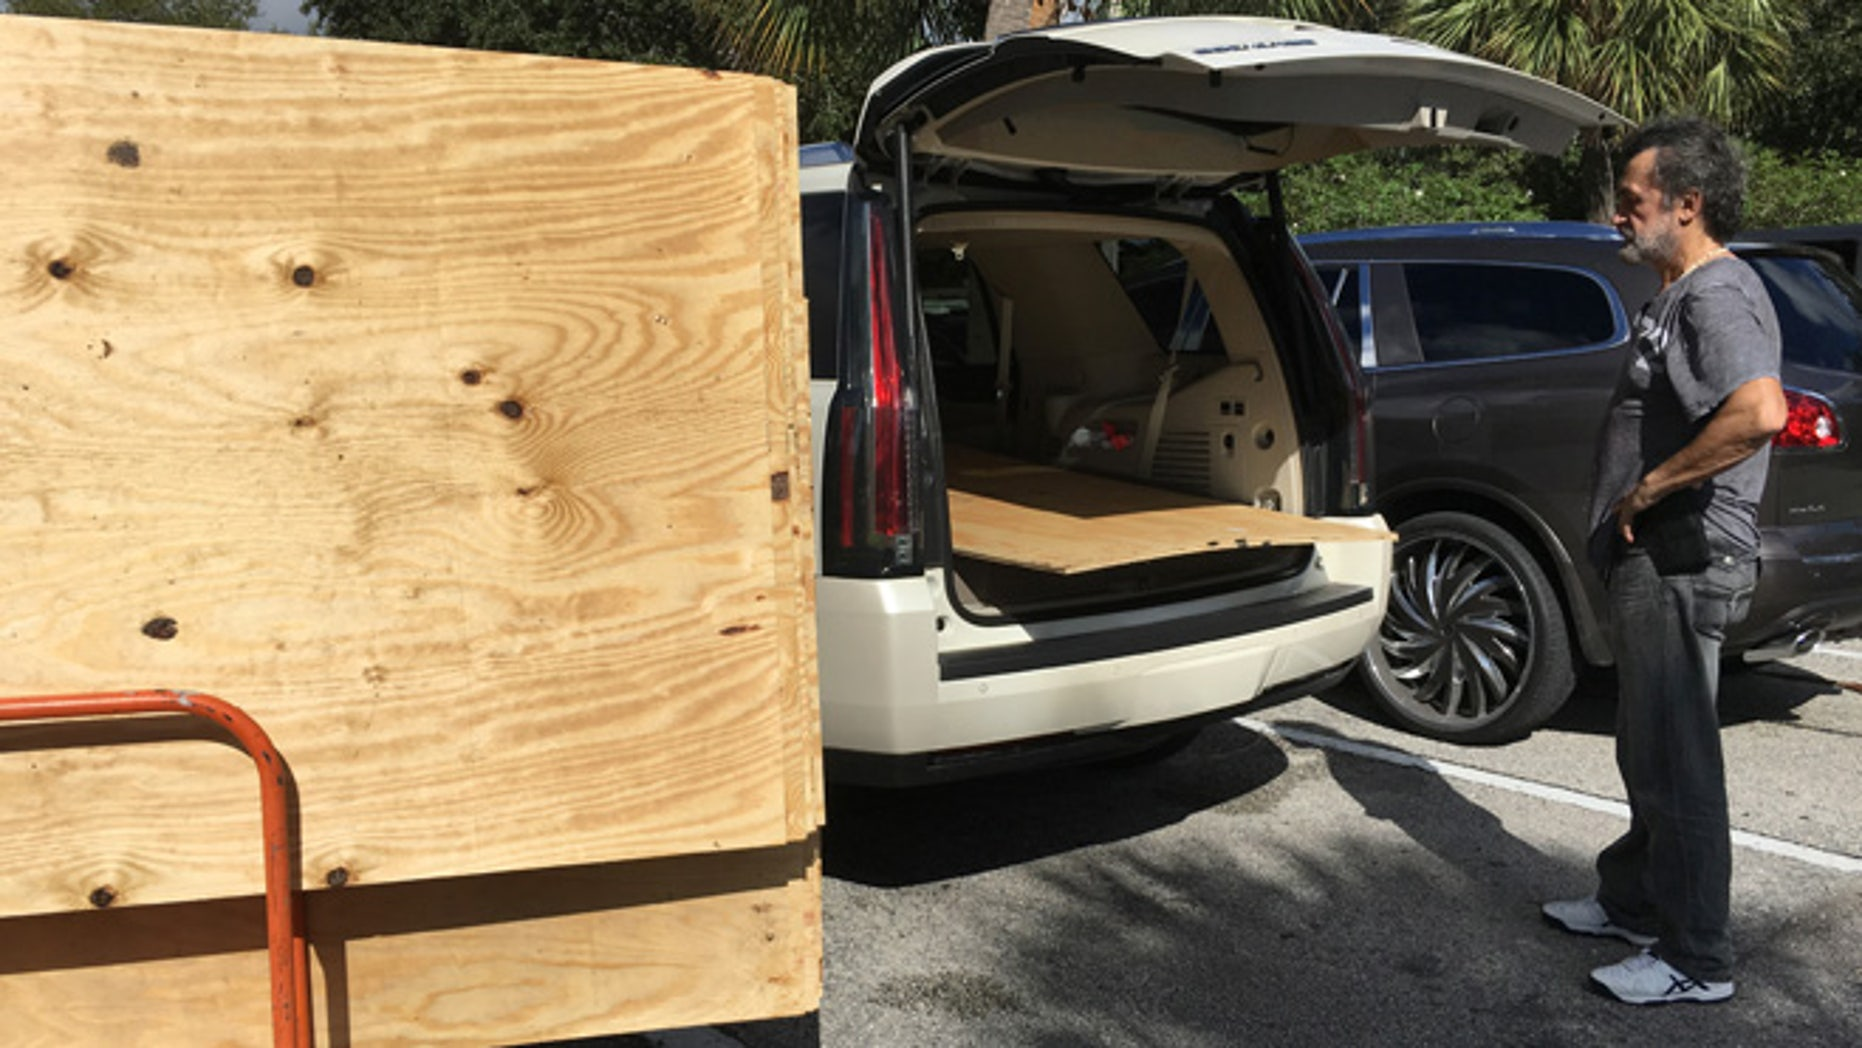 Danny Delarocca, of Boca Raton, loads plywood onto his brother's car at the Home Depot in Deerfield Beach, Fla. Tuesday, Oct. 4, 2016.